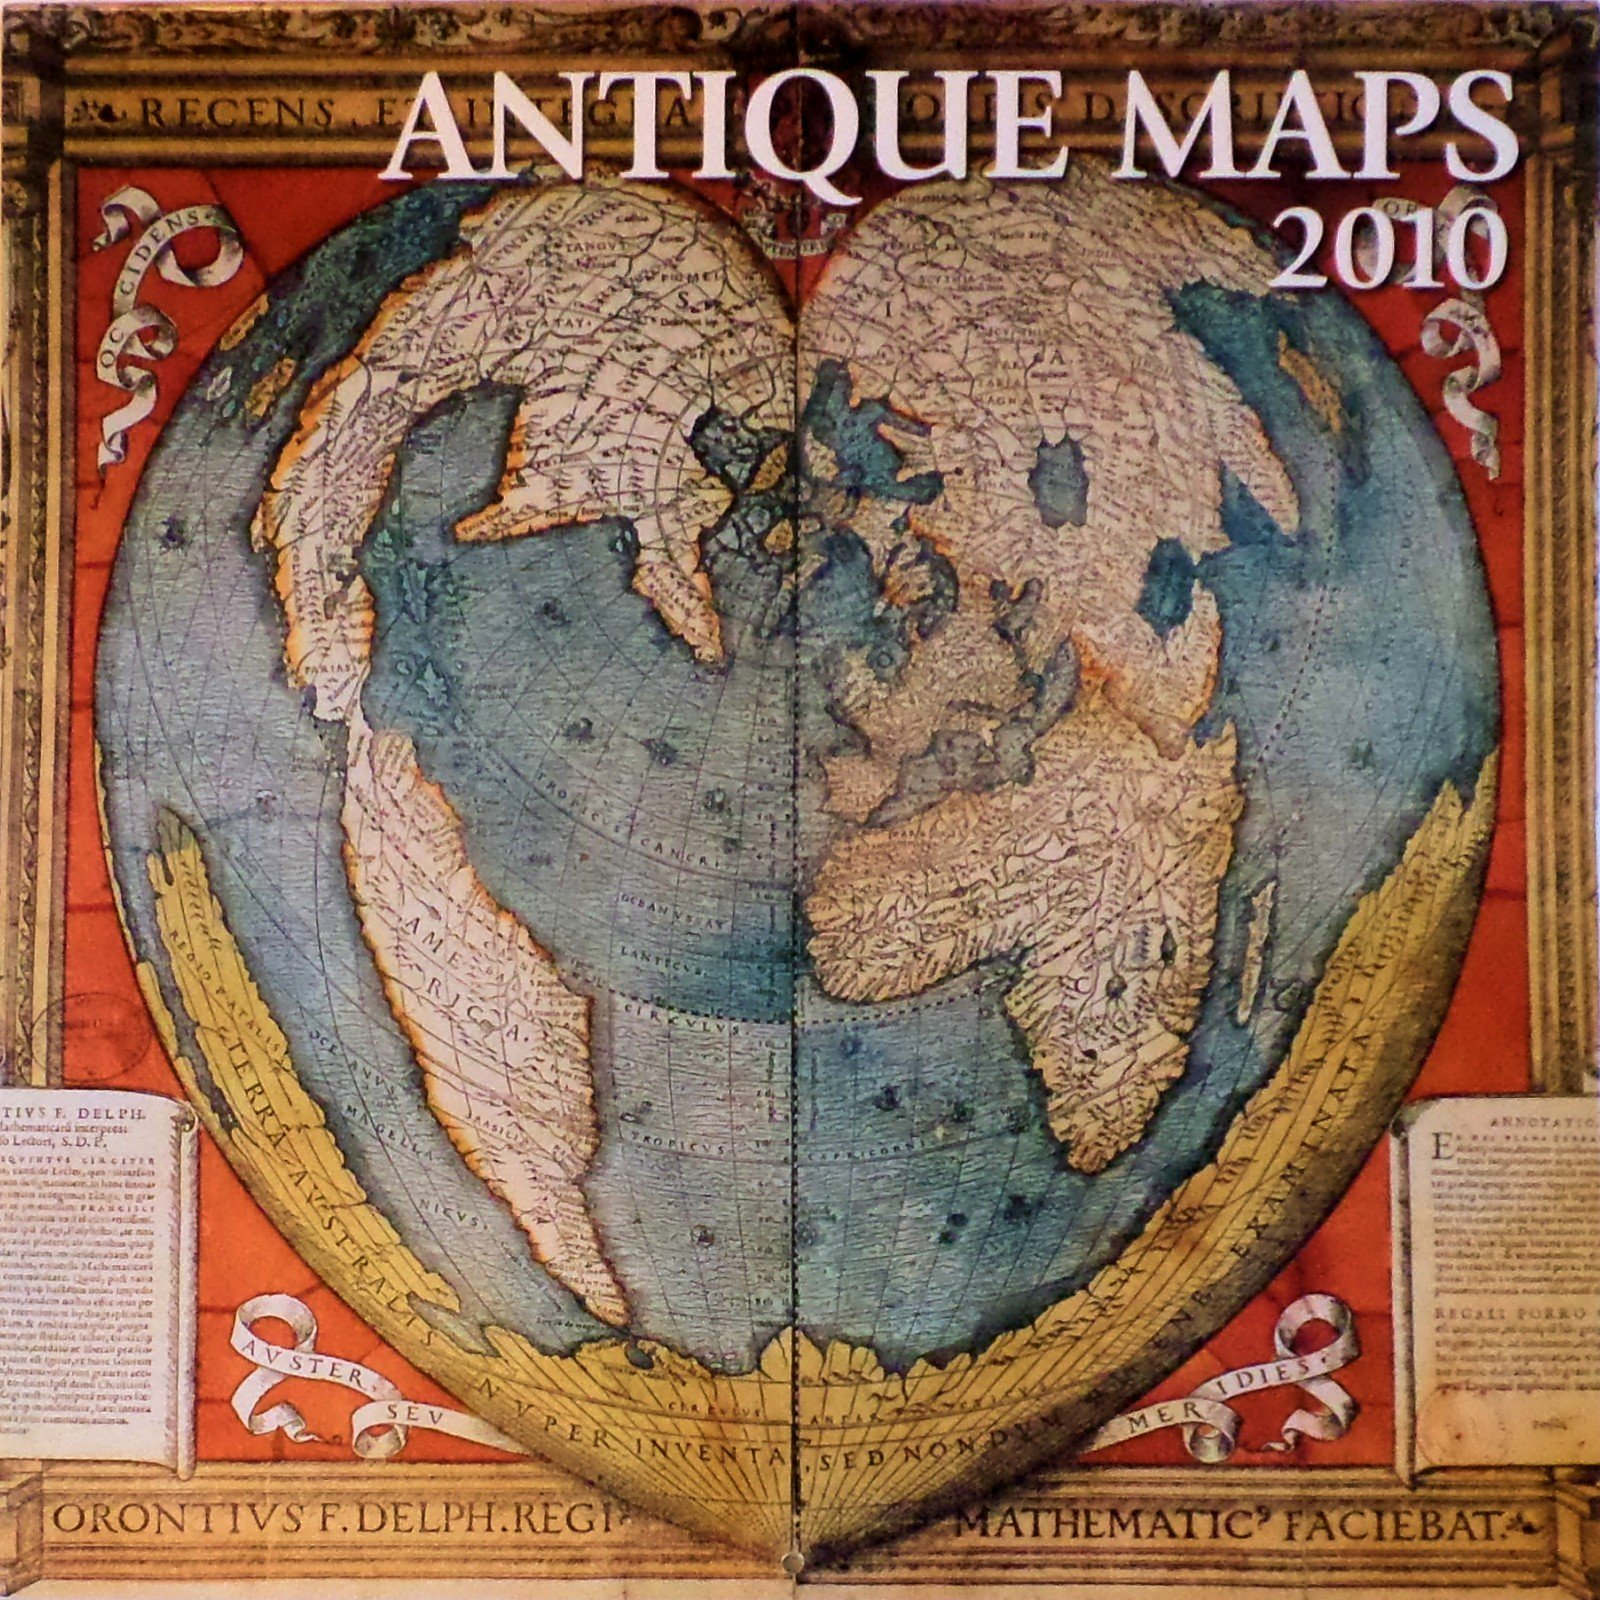 Oldest Known World Map.Antique Maps 12x12 2010 Wall Calendar Silver Lining 9781435112285